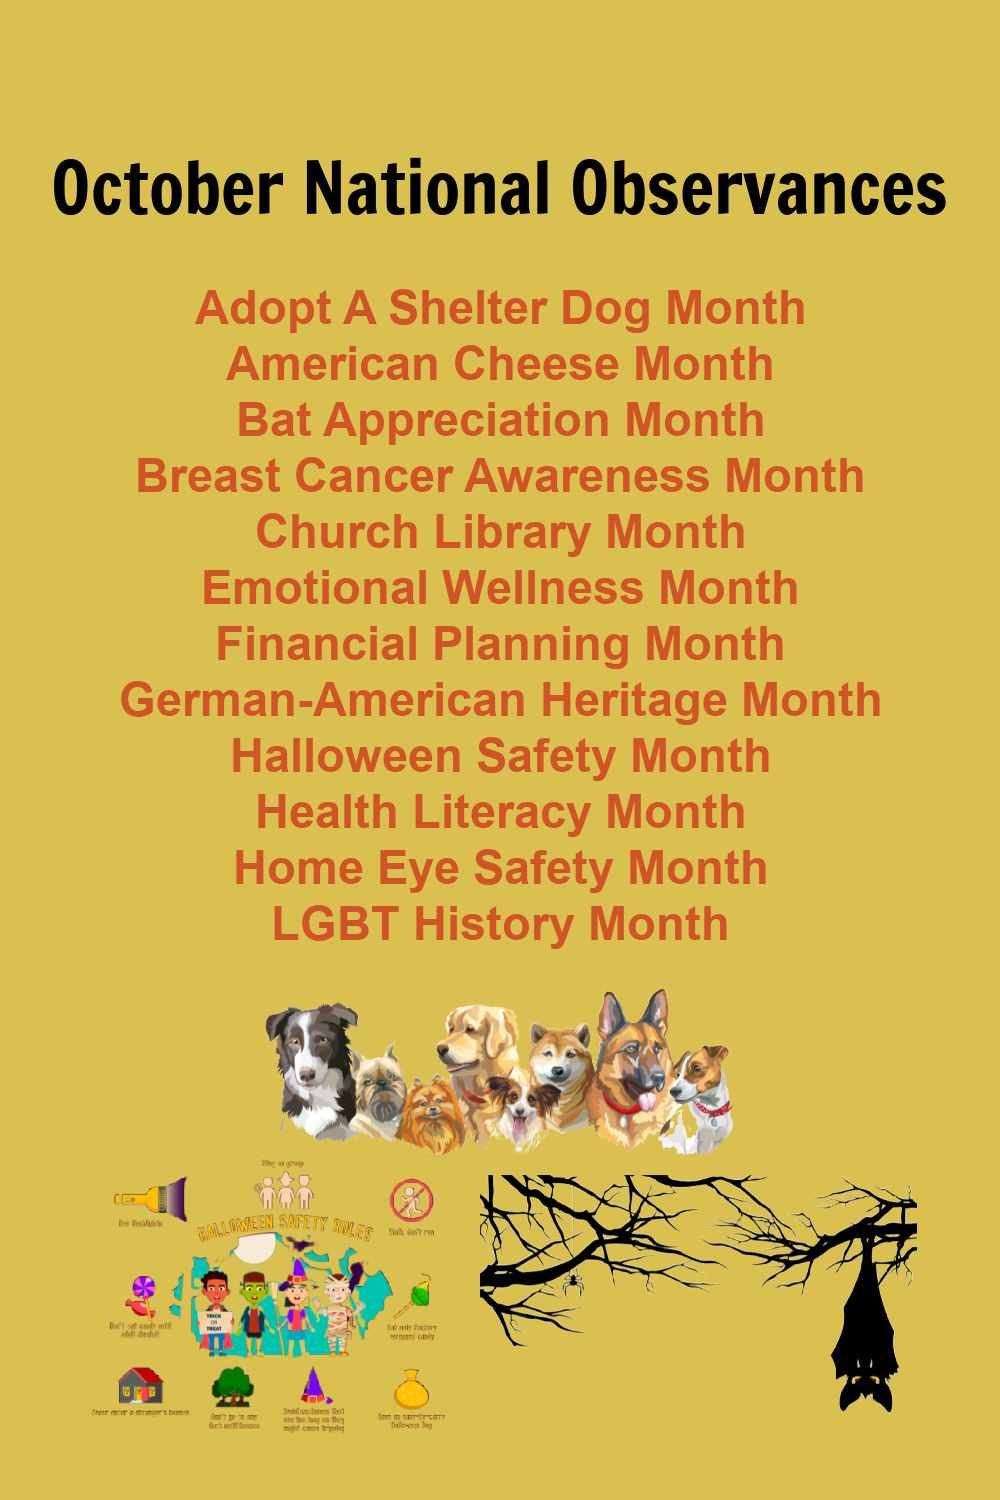 October national observances with dogs, Halloween and bat images.